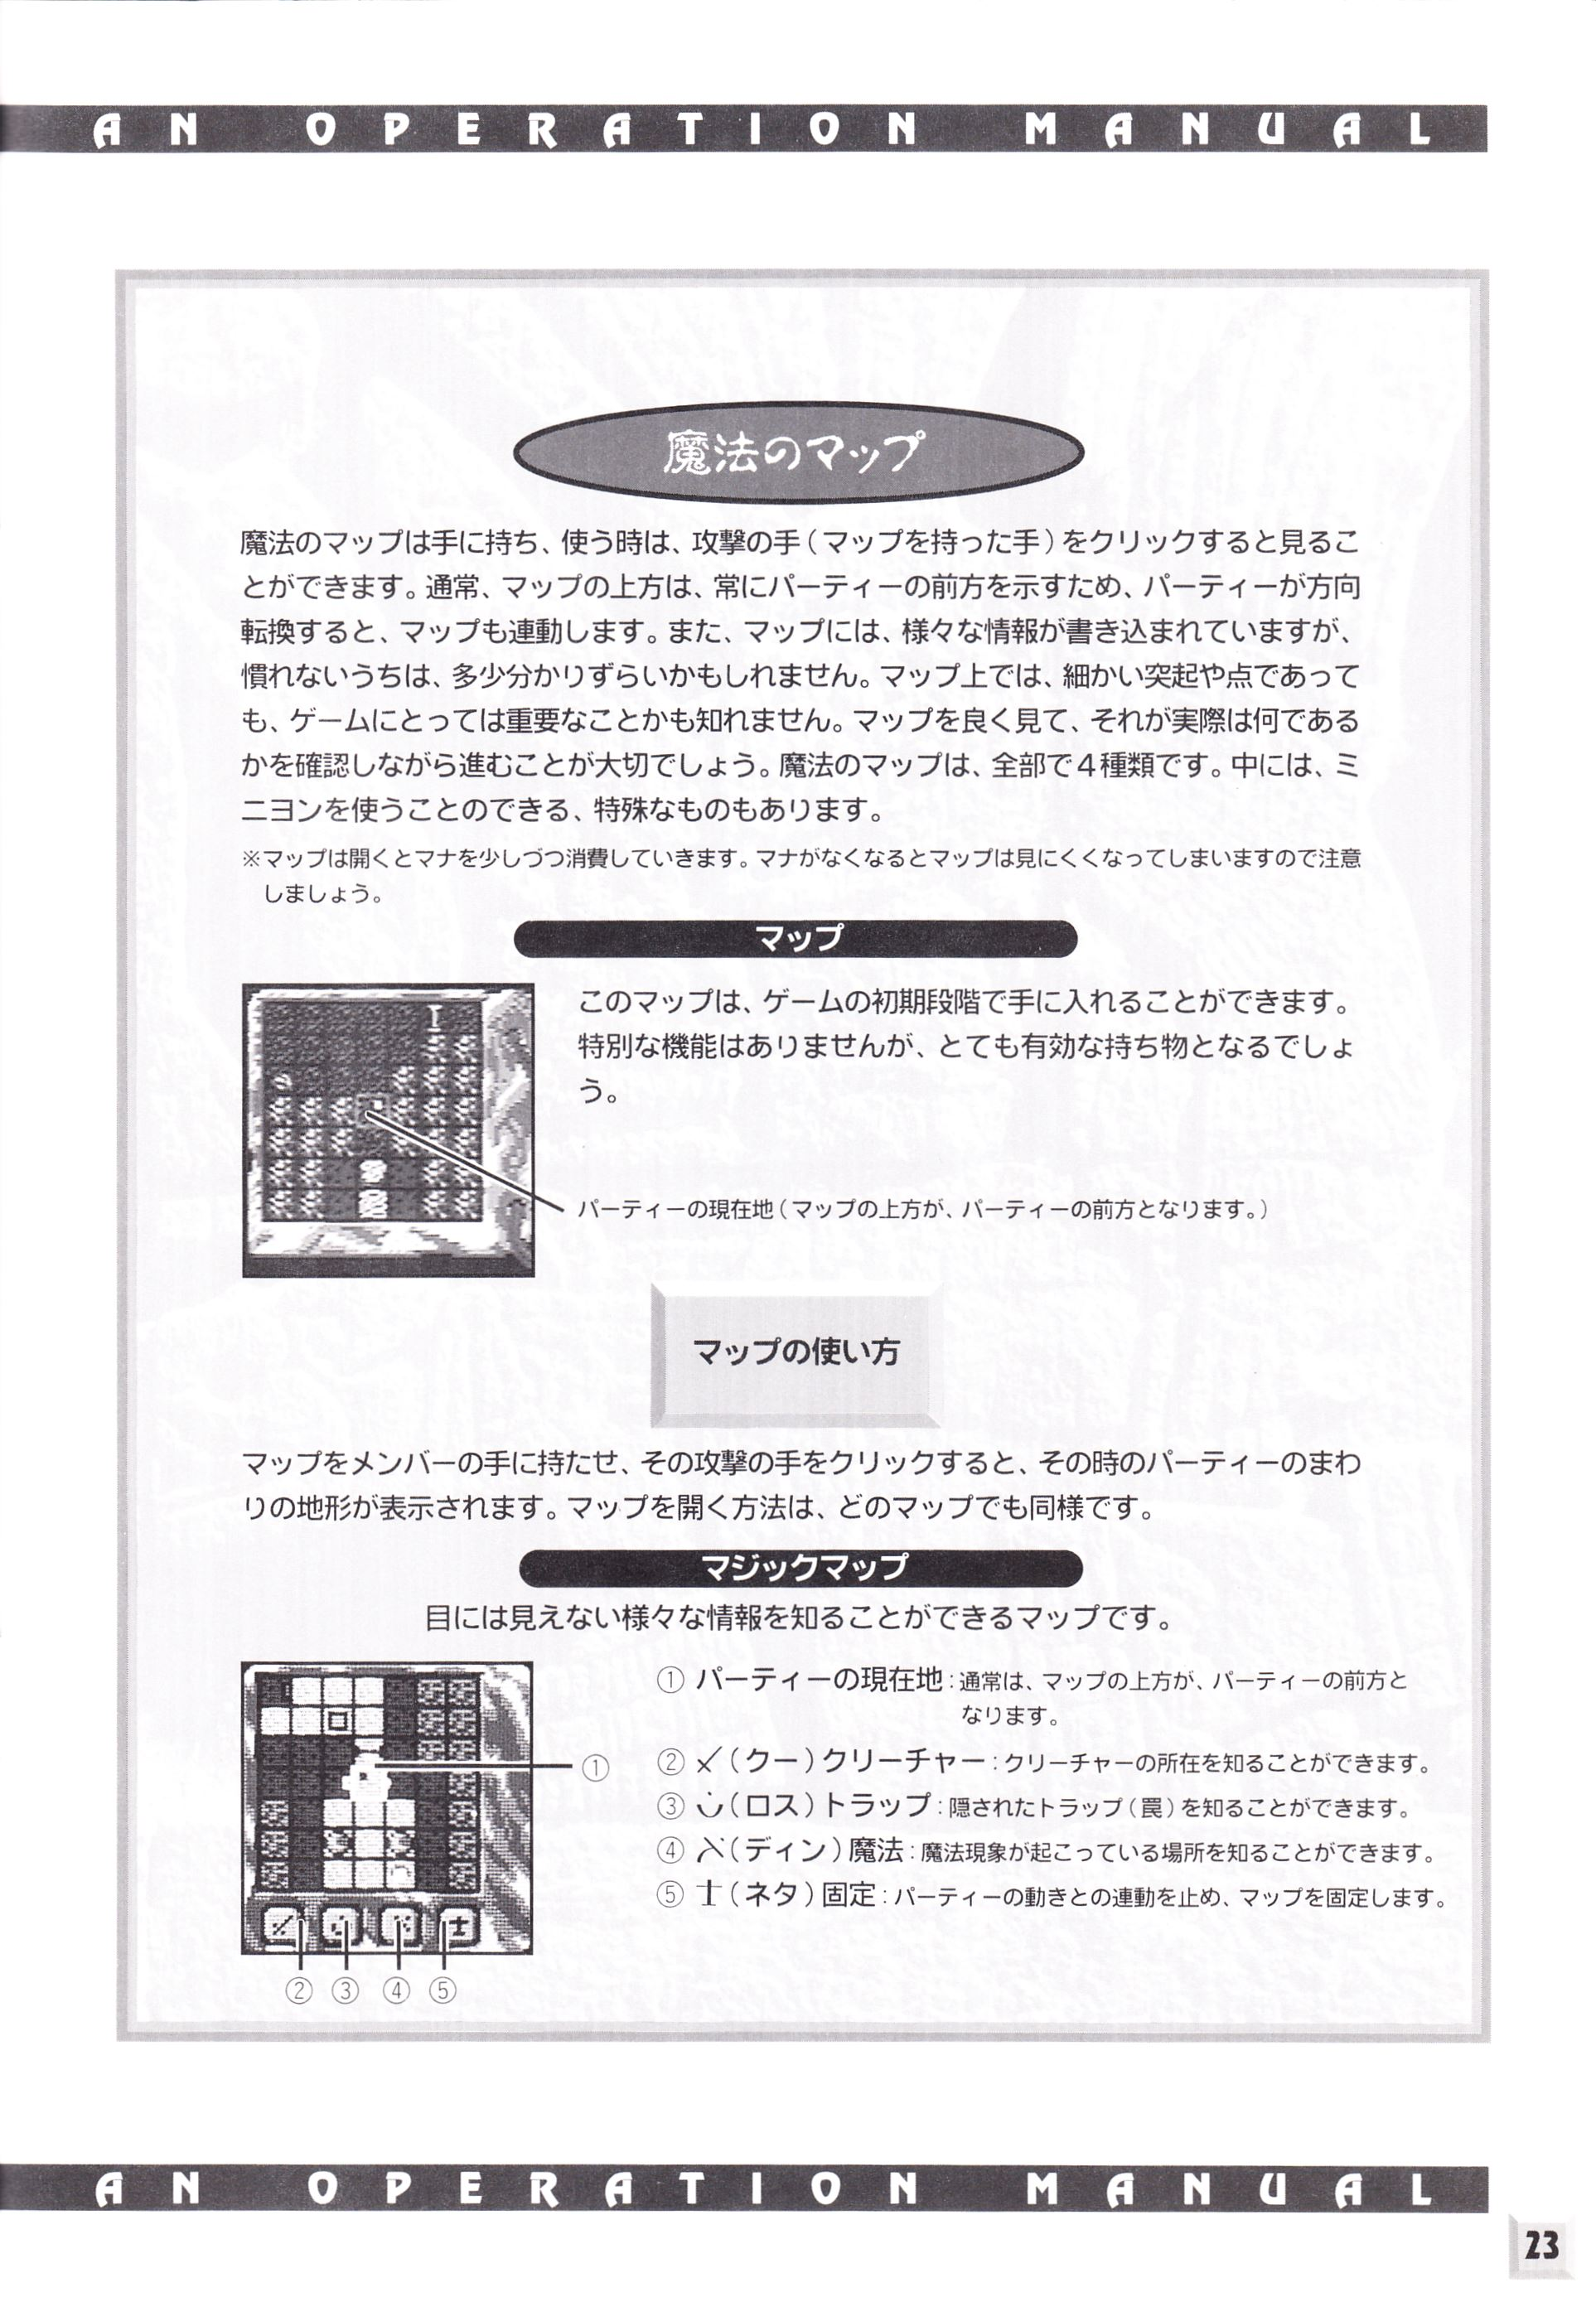 Game - Dungeon Master II - JP - FM Towns - An Operation Manual - Page 025 - Scan